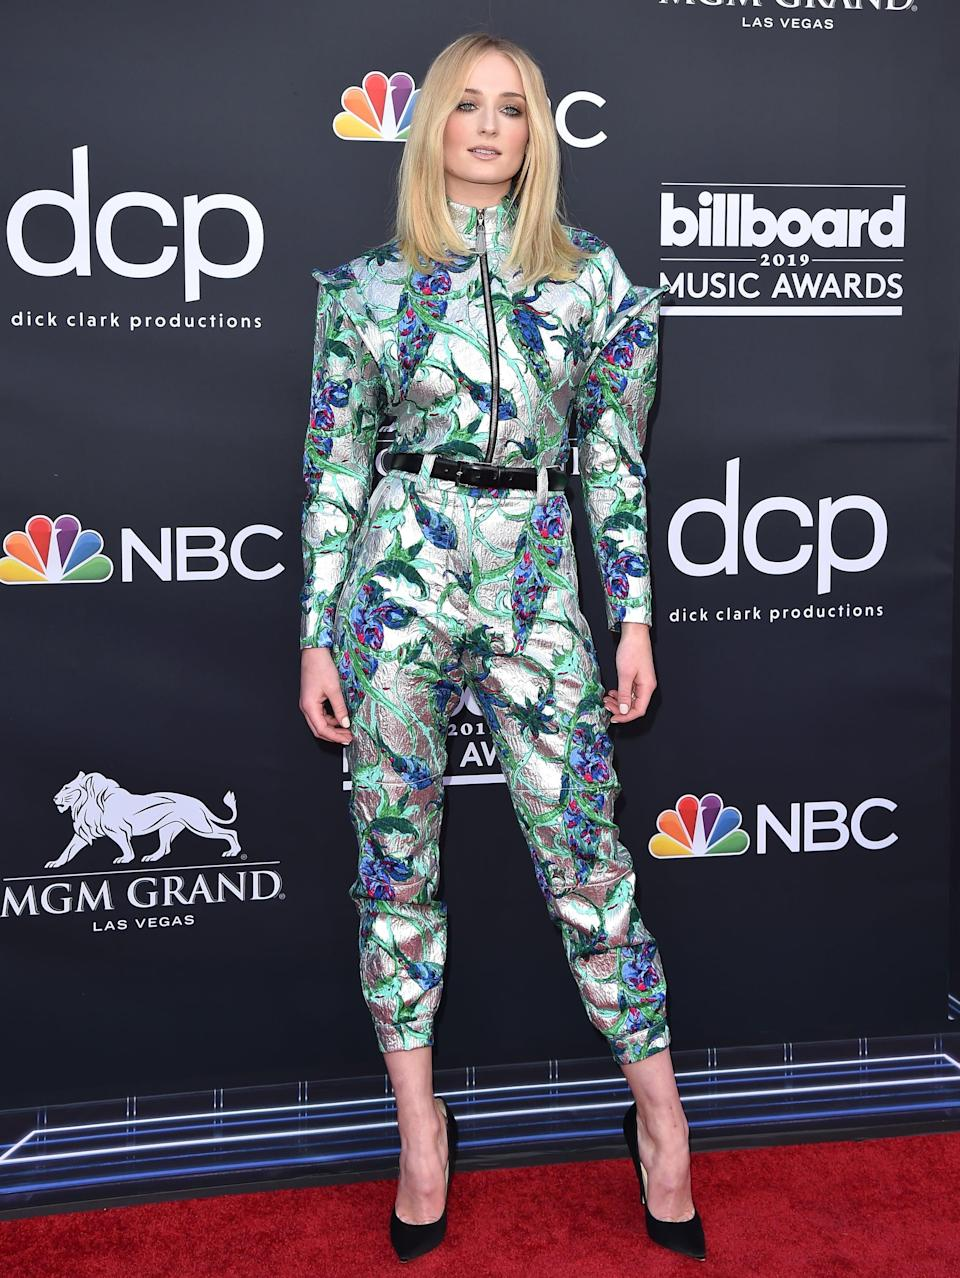 <p>Some refer to it as her space age suit, but the jacquard, zipper-front jumper Sophie wore to the 2019 Billboard Music Awards was straight off the runway and accessorized minimally with tall Jimmy Choo Anouk pumps.</p>